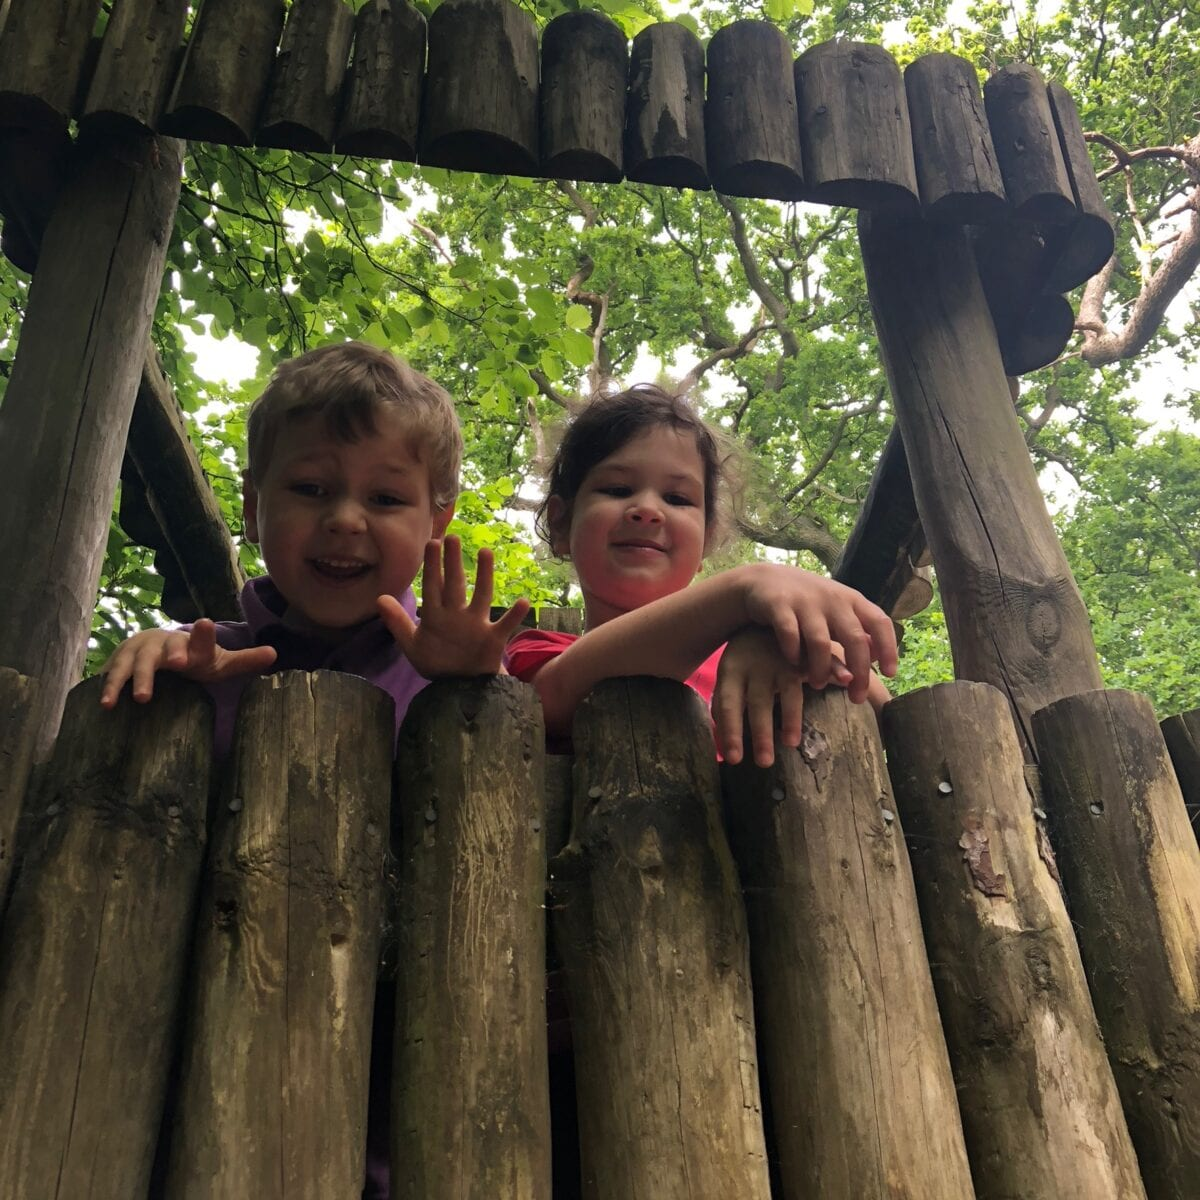 Kids in the treehouse